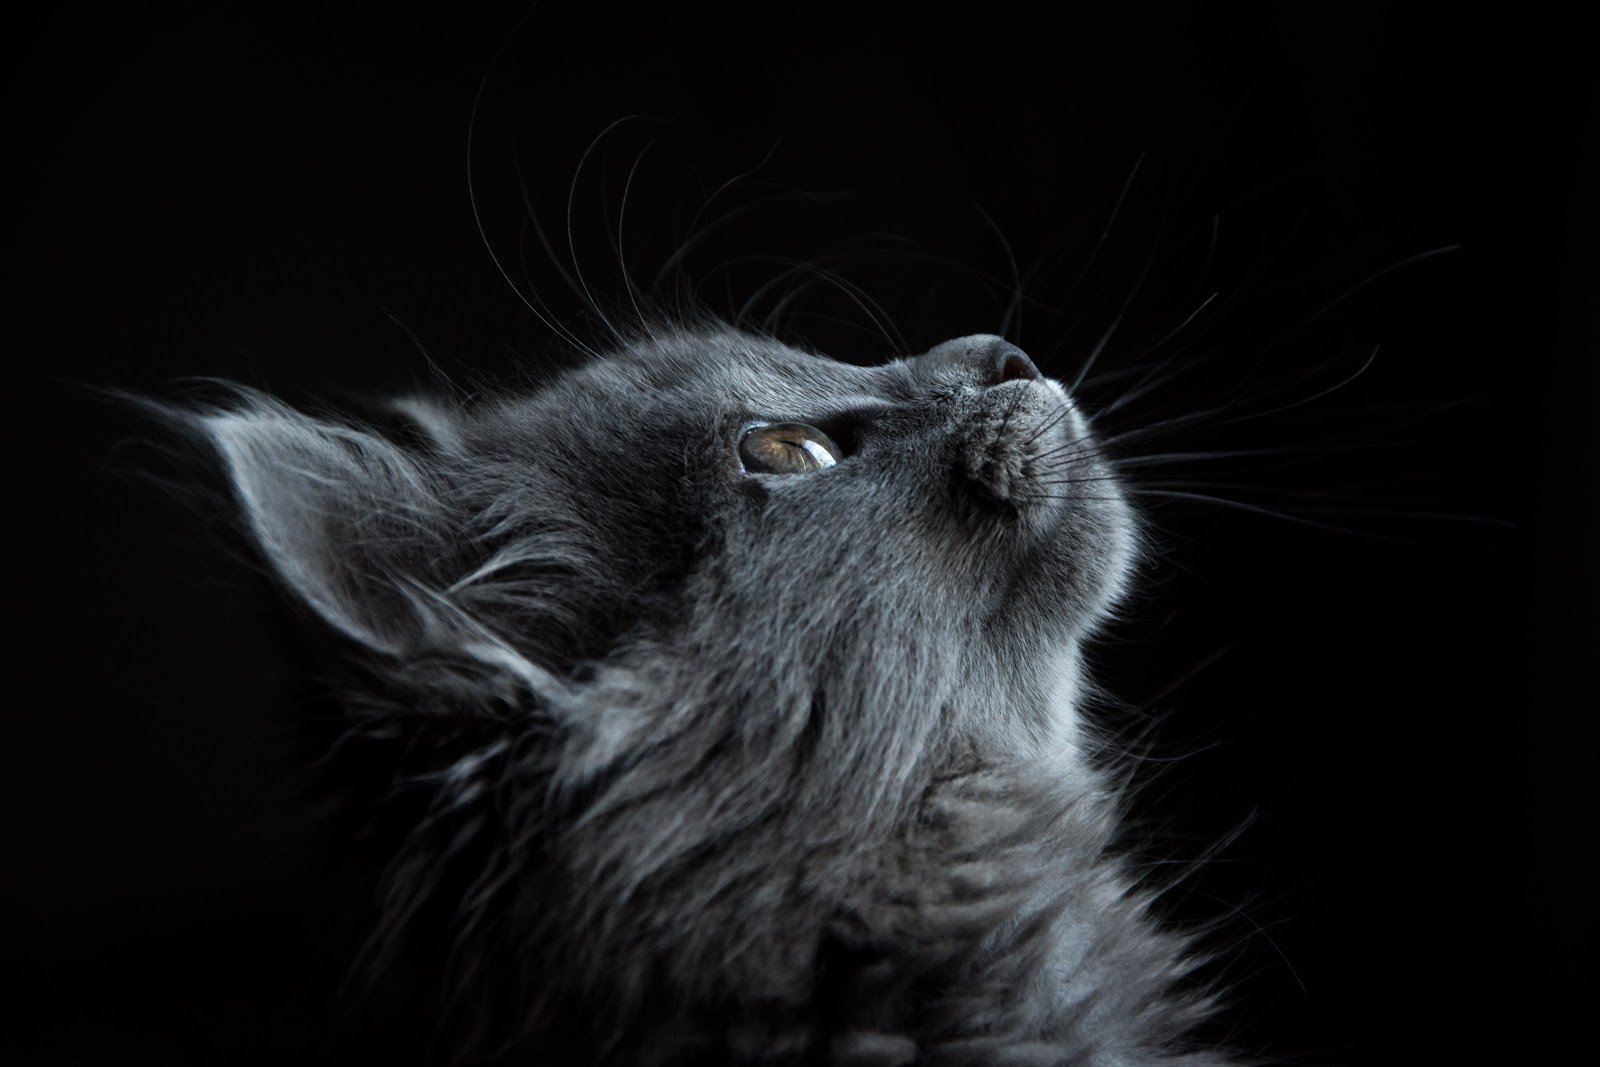 A gray kitten looks up, hoping to be adopted.